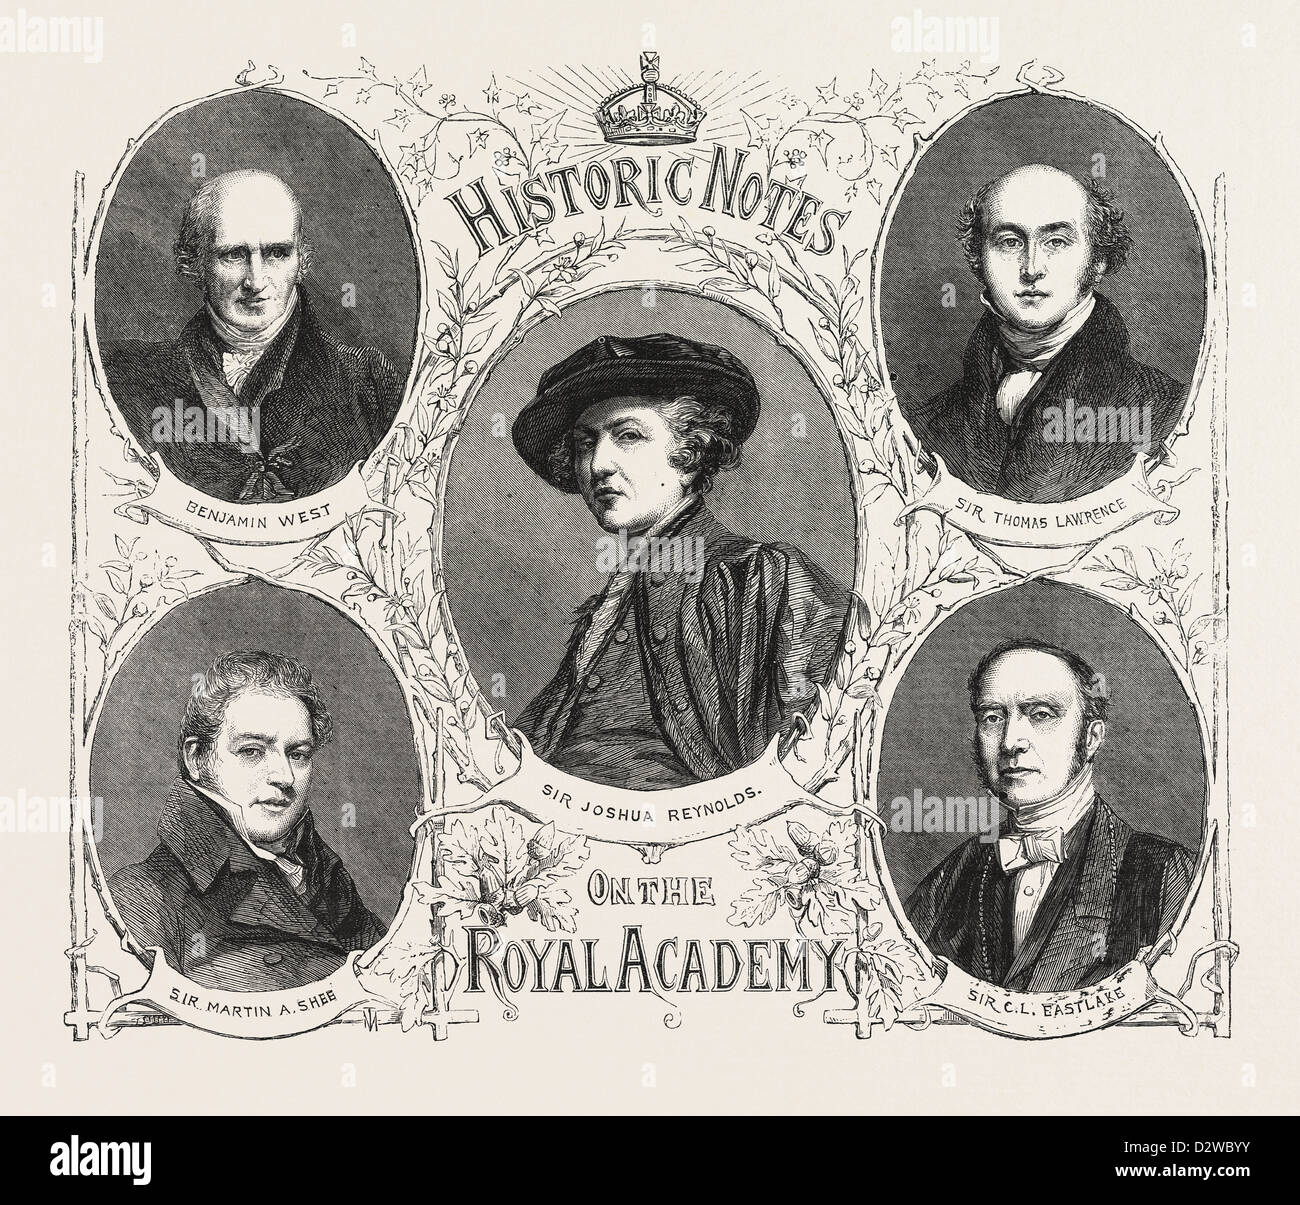 PORTRAITS OF THE PRESIDENTS OF THE ROYAL ACADEMY. - Stock Image